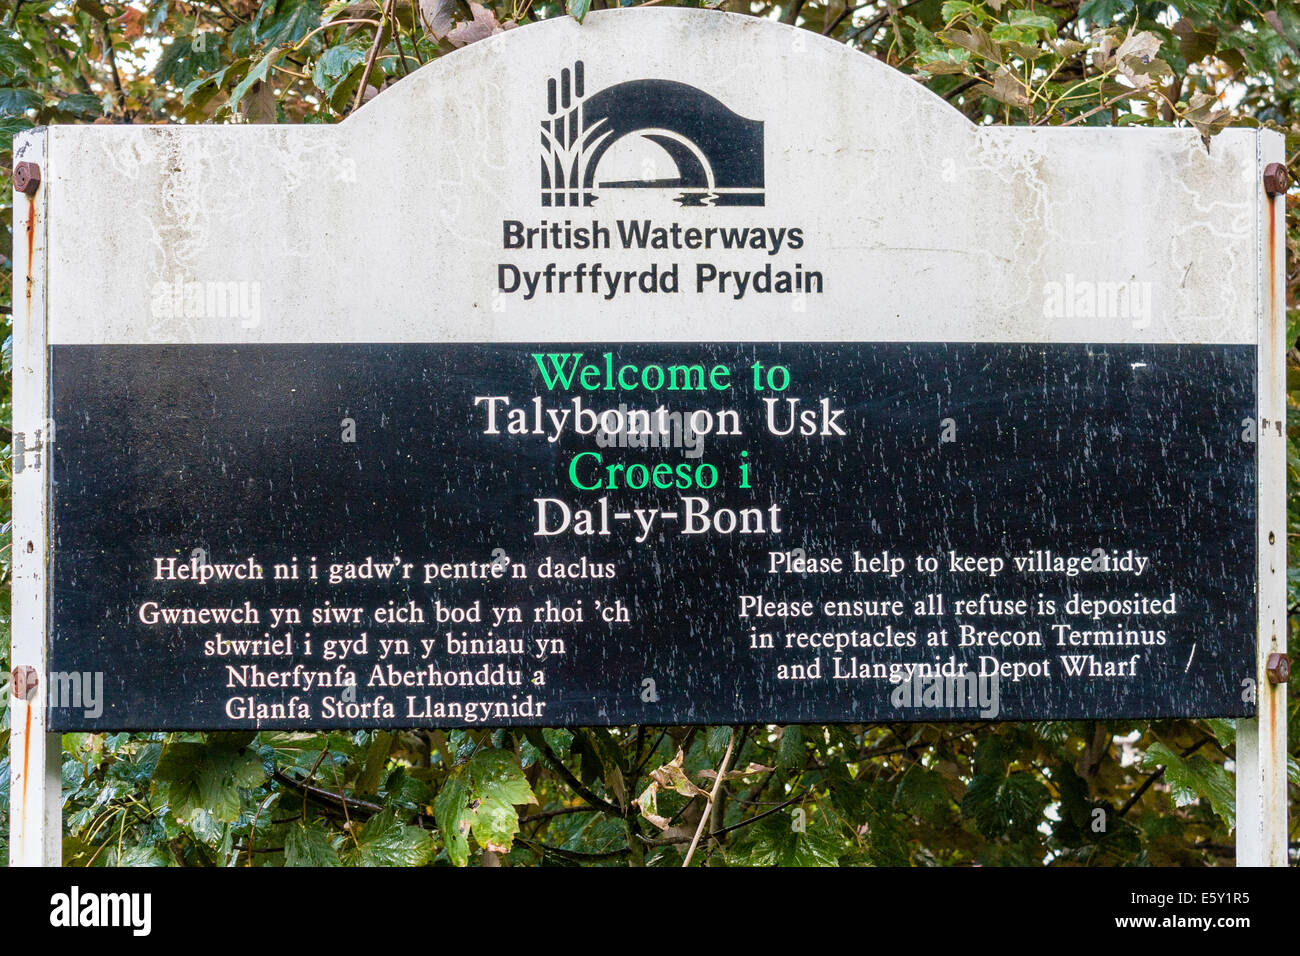 British Waterways sign: 'Welcome to Talybont on Usk'. Talybont-on-Usk, Powys, Wales, GB, UK. - Stock Image